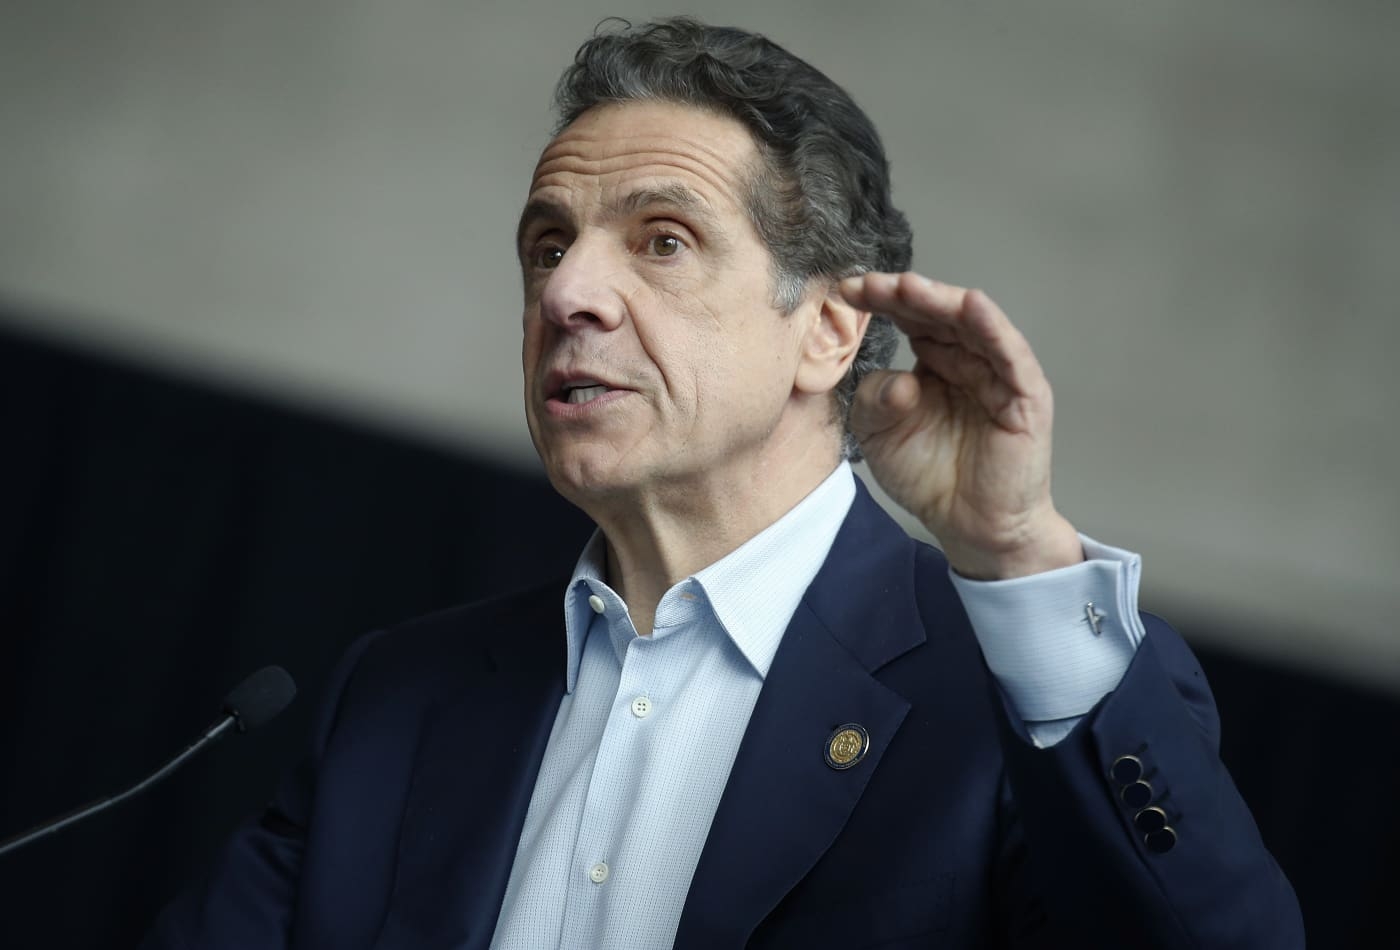 Cuomo says coronavirus is 'more dangerous' than expected as New York cases jump 14% overnight to 75,795